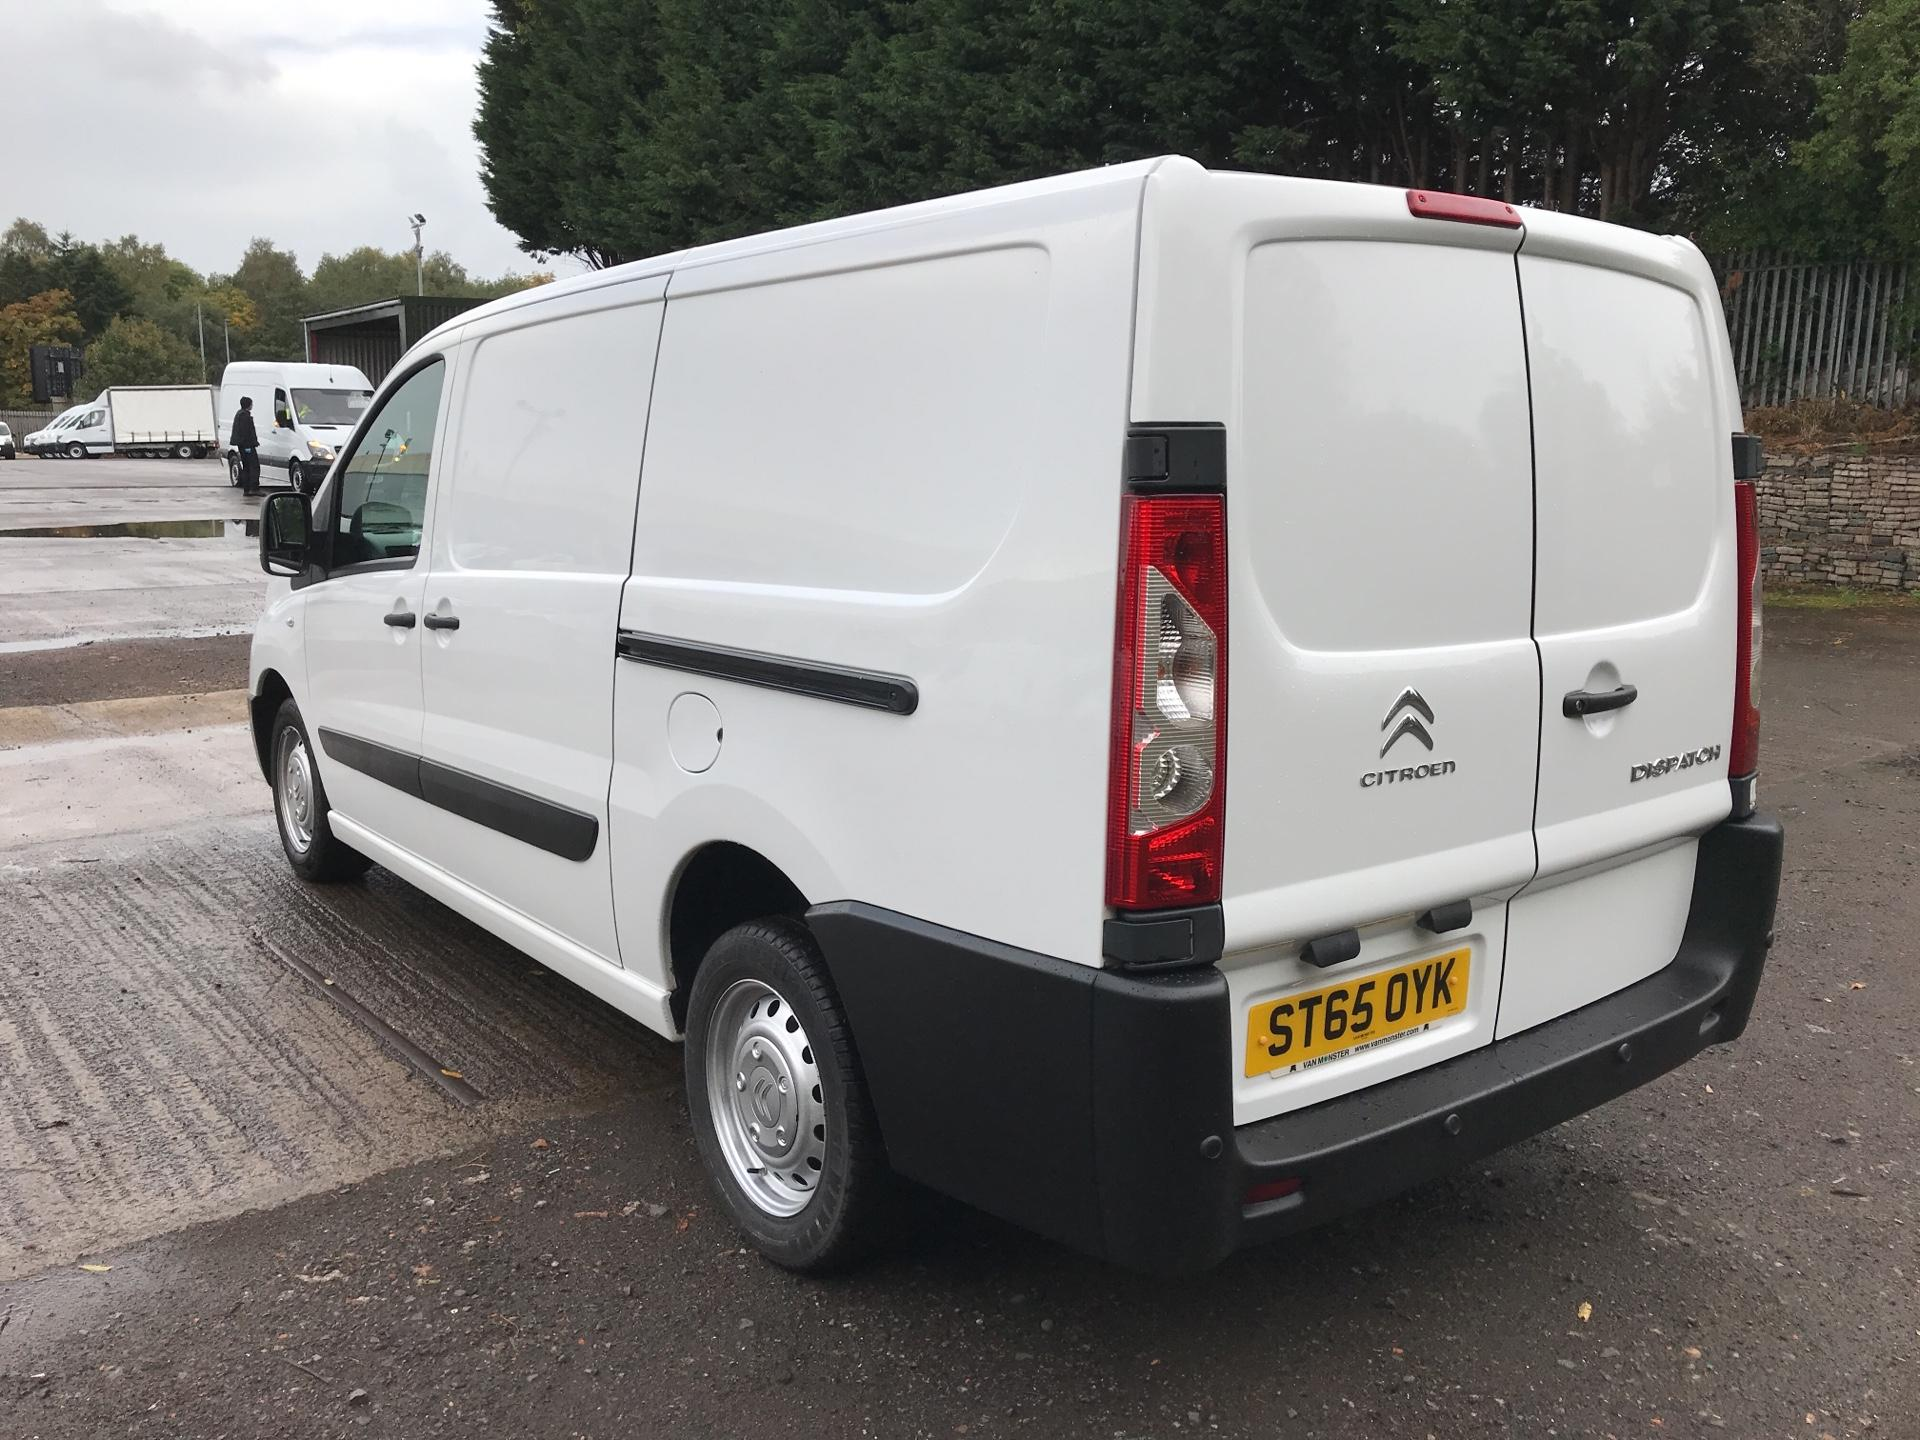 2015 Citroen Dispatch L2 DIESEL 1200 HDI 125PS H1 VAN ENTERPRISE EURO 5 (ST65OYK) Image 5